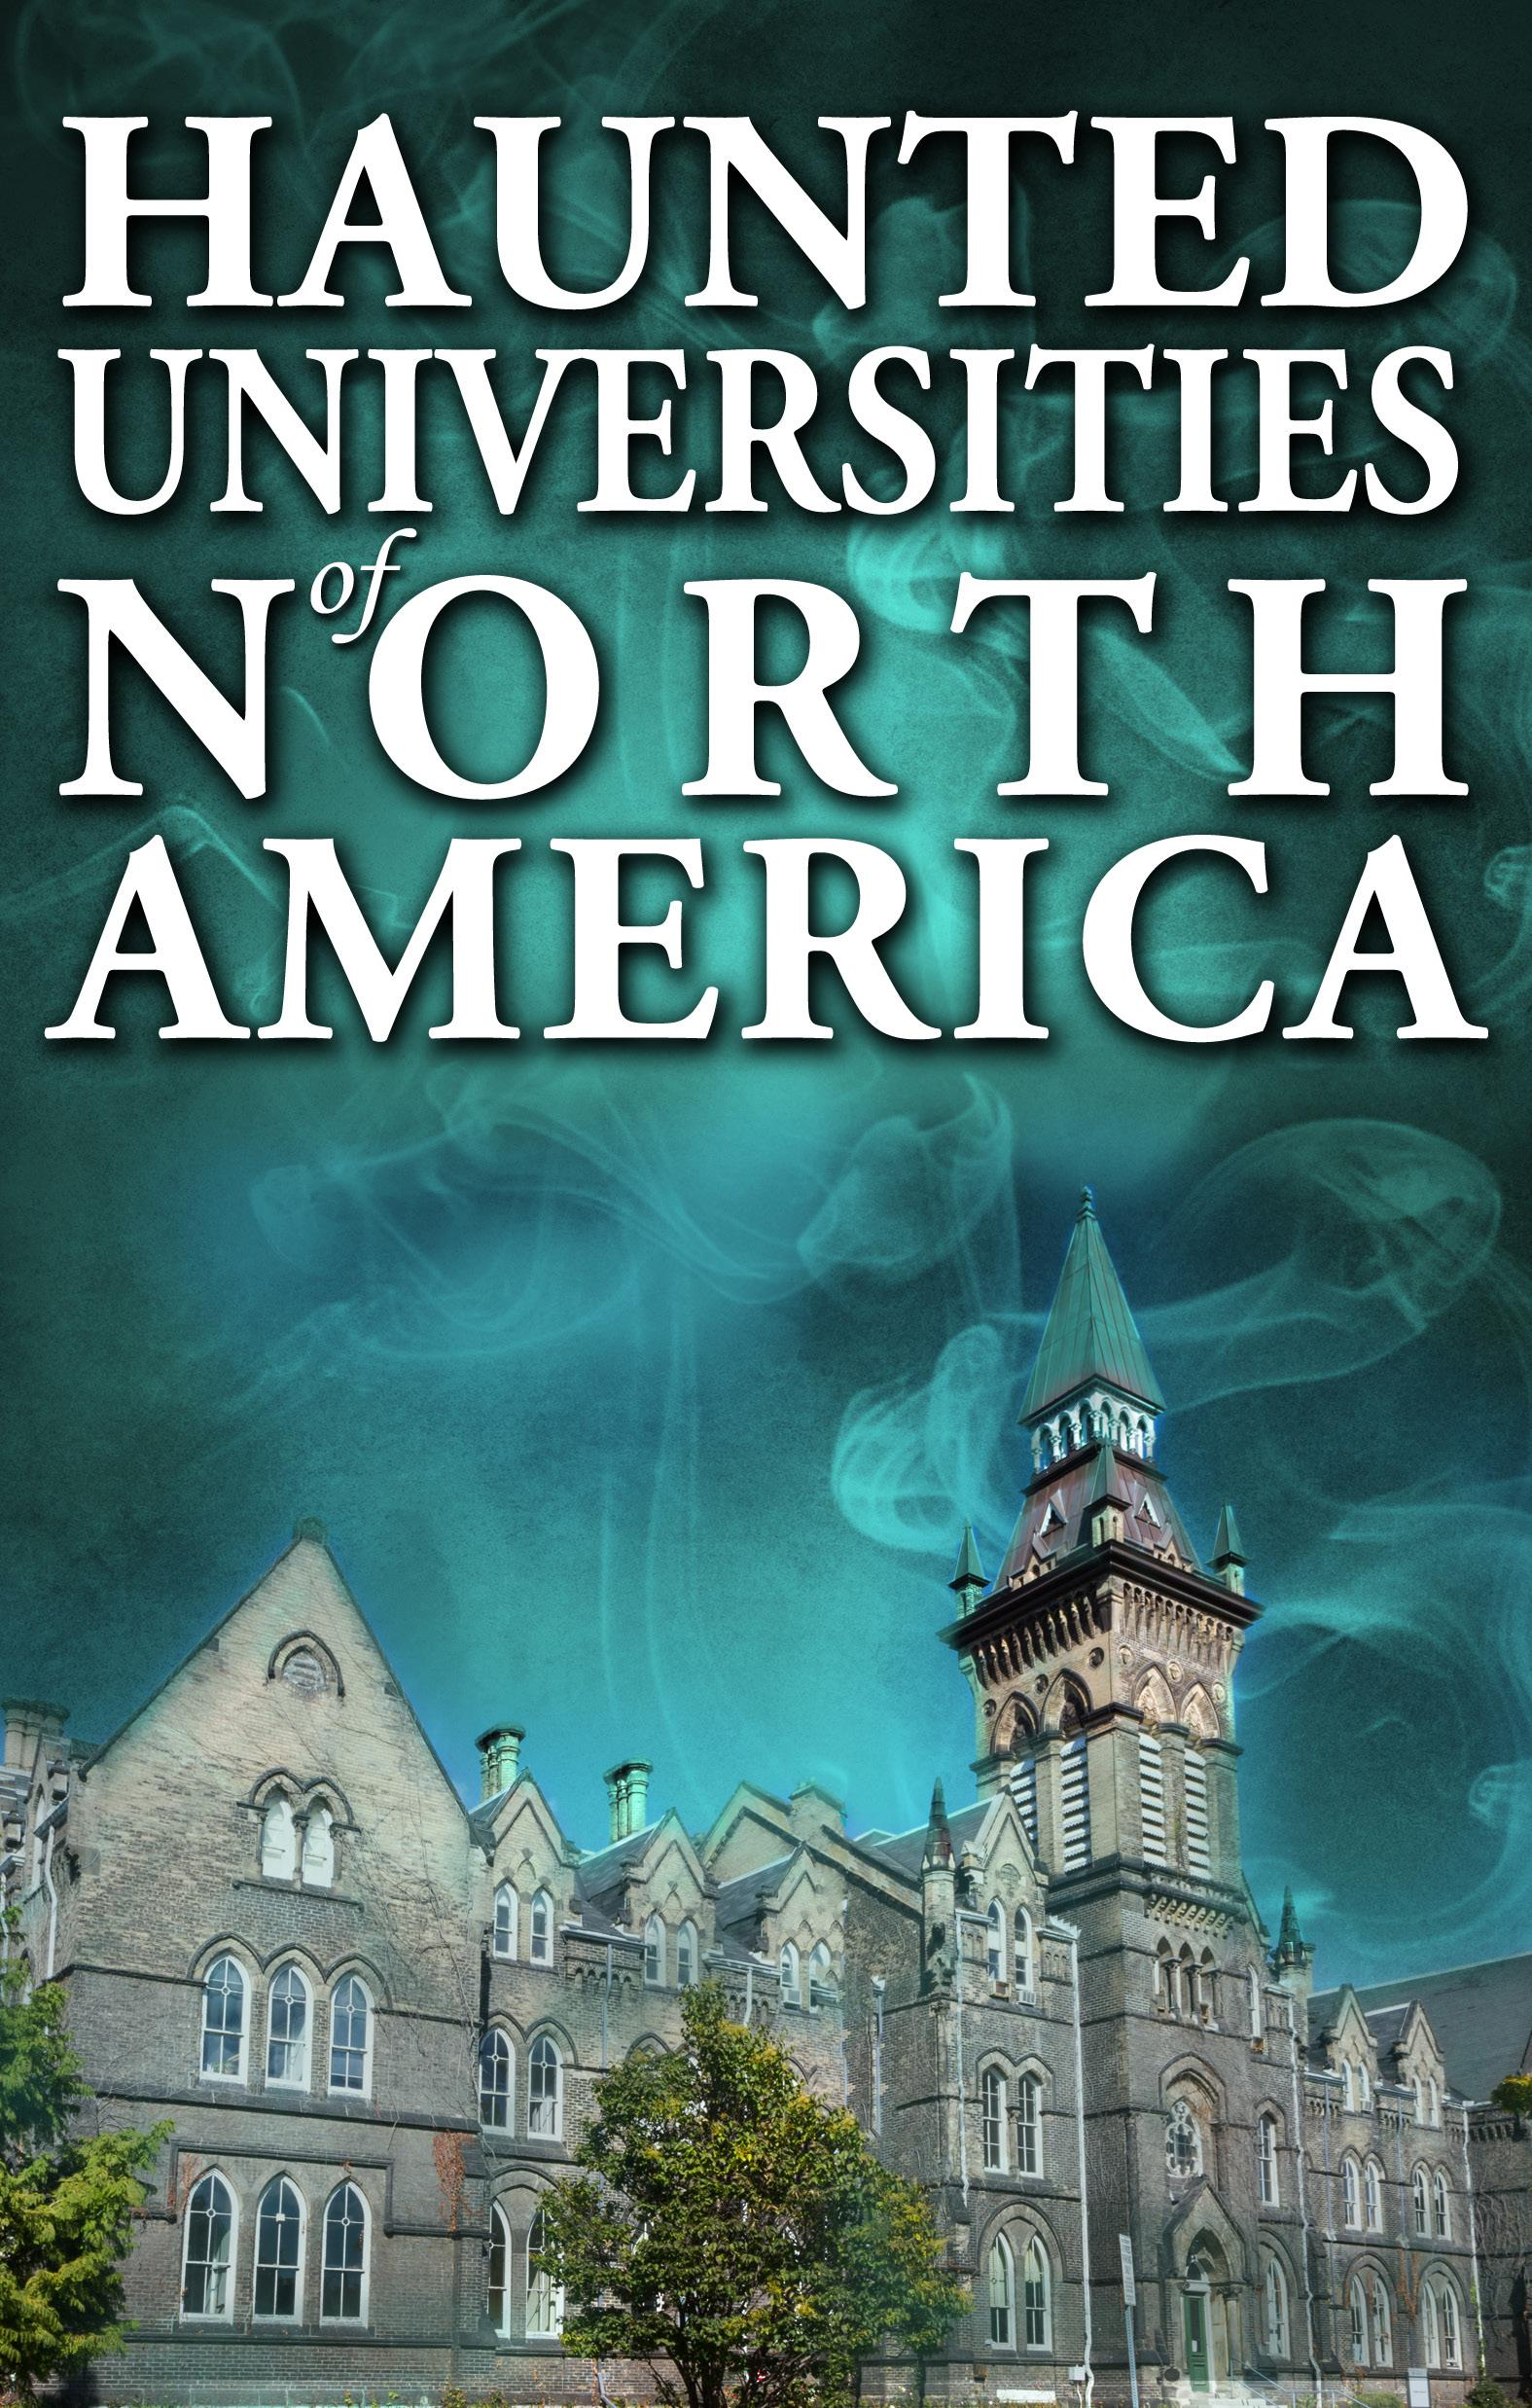 Haunted Universities of North America